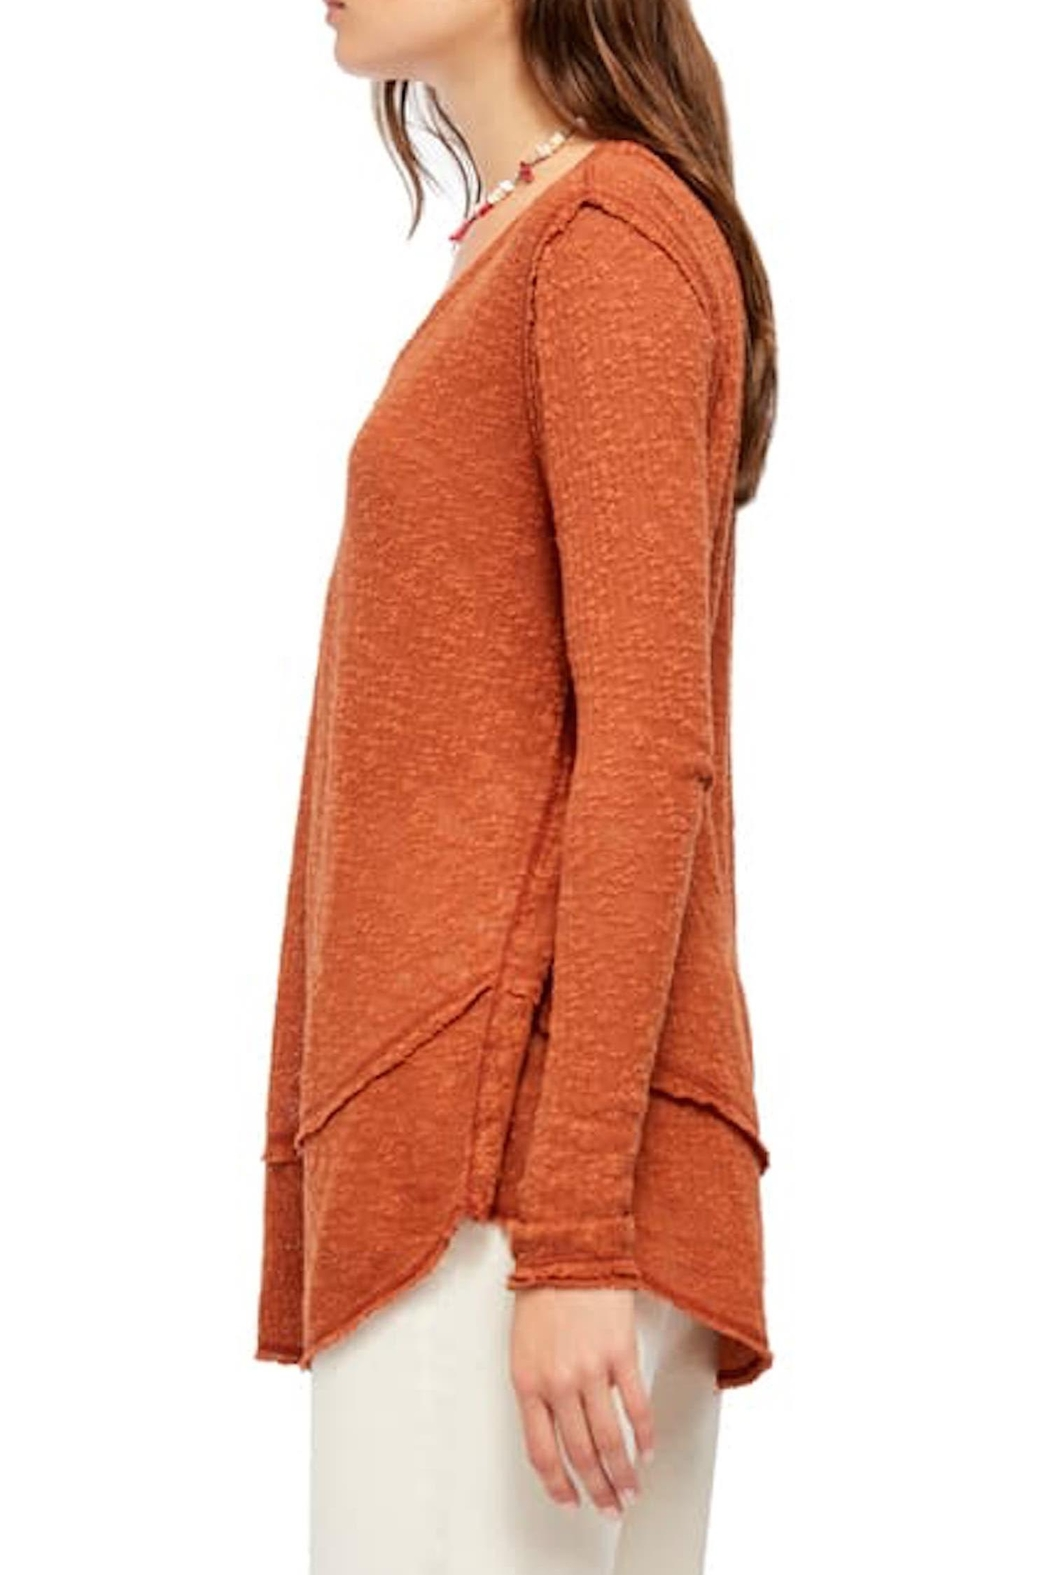 Free People Fp Ocean-Hacci Sweater - Side Cropped Image